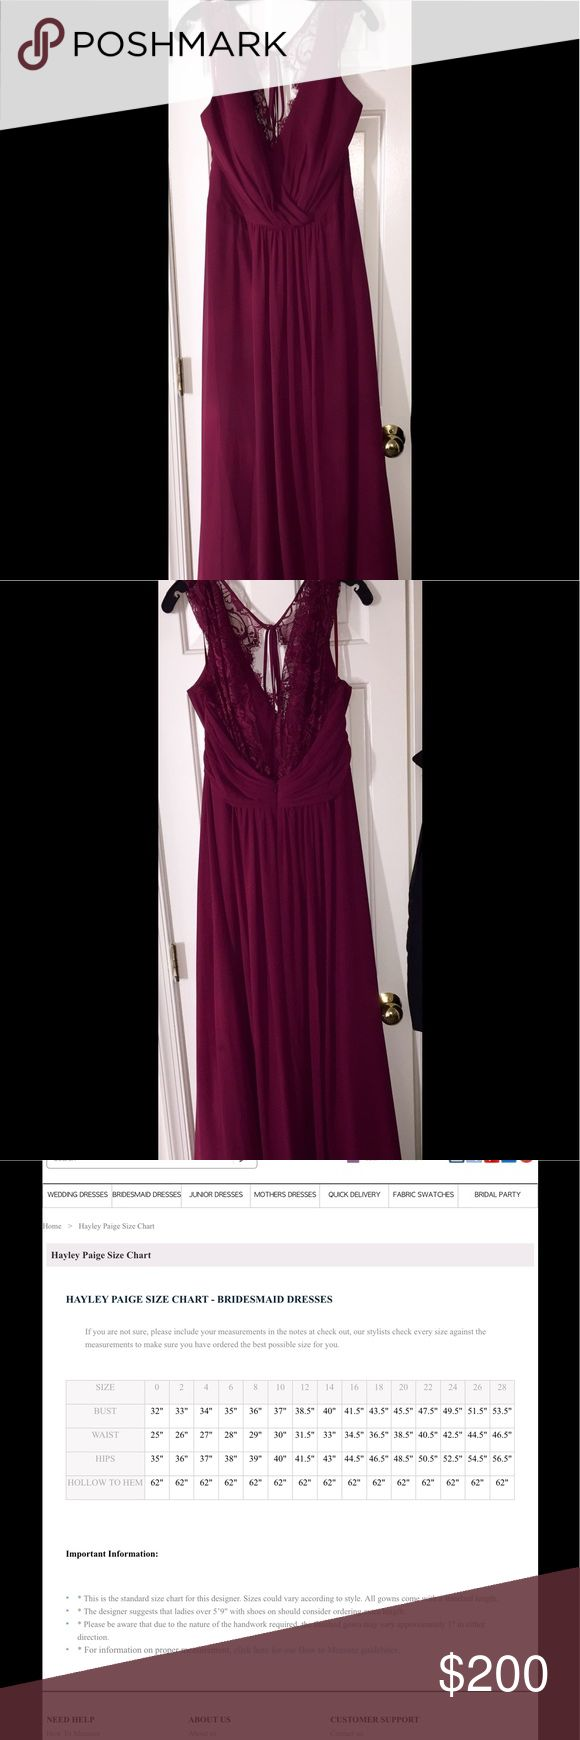 """Hayley Paige Gown Hayley Paige Occasions 5600 - Burgundy chiffon A-line bridesmaid gown, draped V-neckline, natural waist with gathered skirt, lace trim at neckline, cap sleeve, and sheer lace back. This is a totally unworn, unaltered Haley Paige Style #5600 Burgundy Gown. Size 16. Bought as a bridesmaids dress but unfortunately never got to wear it. Has plenty of material on the bottom for tall girls. I'm 5'10"""" and had plenty of extra material at the bottom. hayley paige Dresses Wedding"""